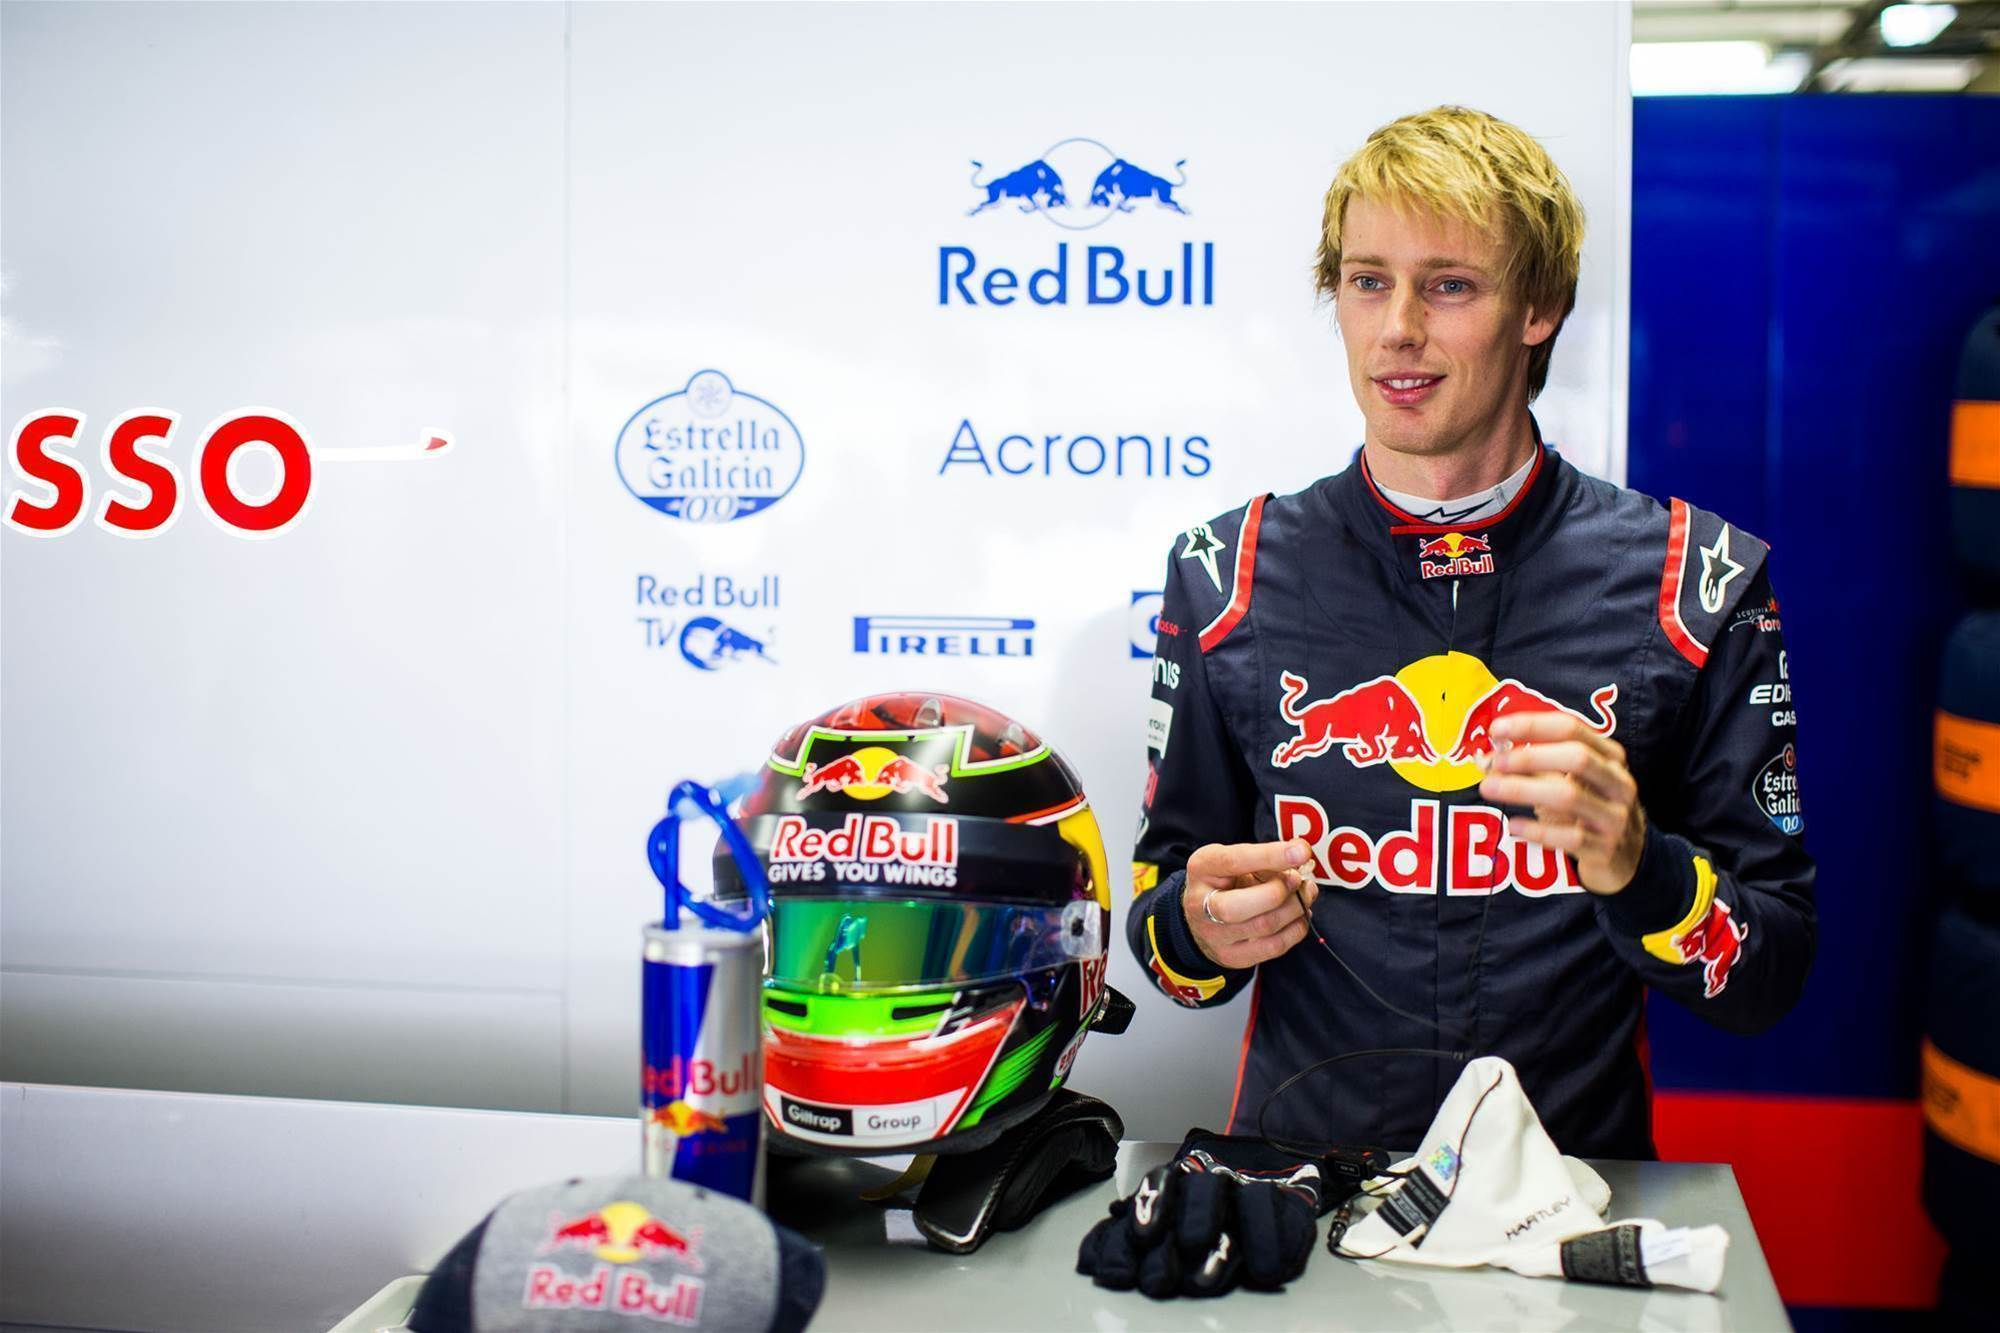 Hartley confirmed for Toro Rosso in 2018